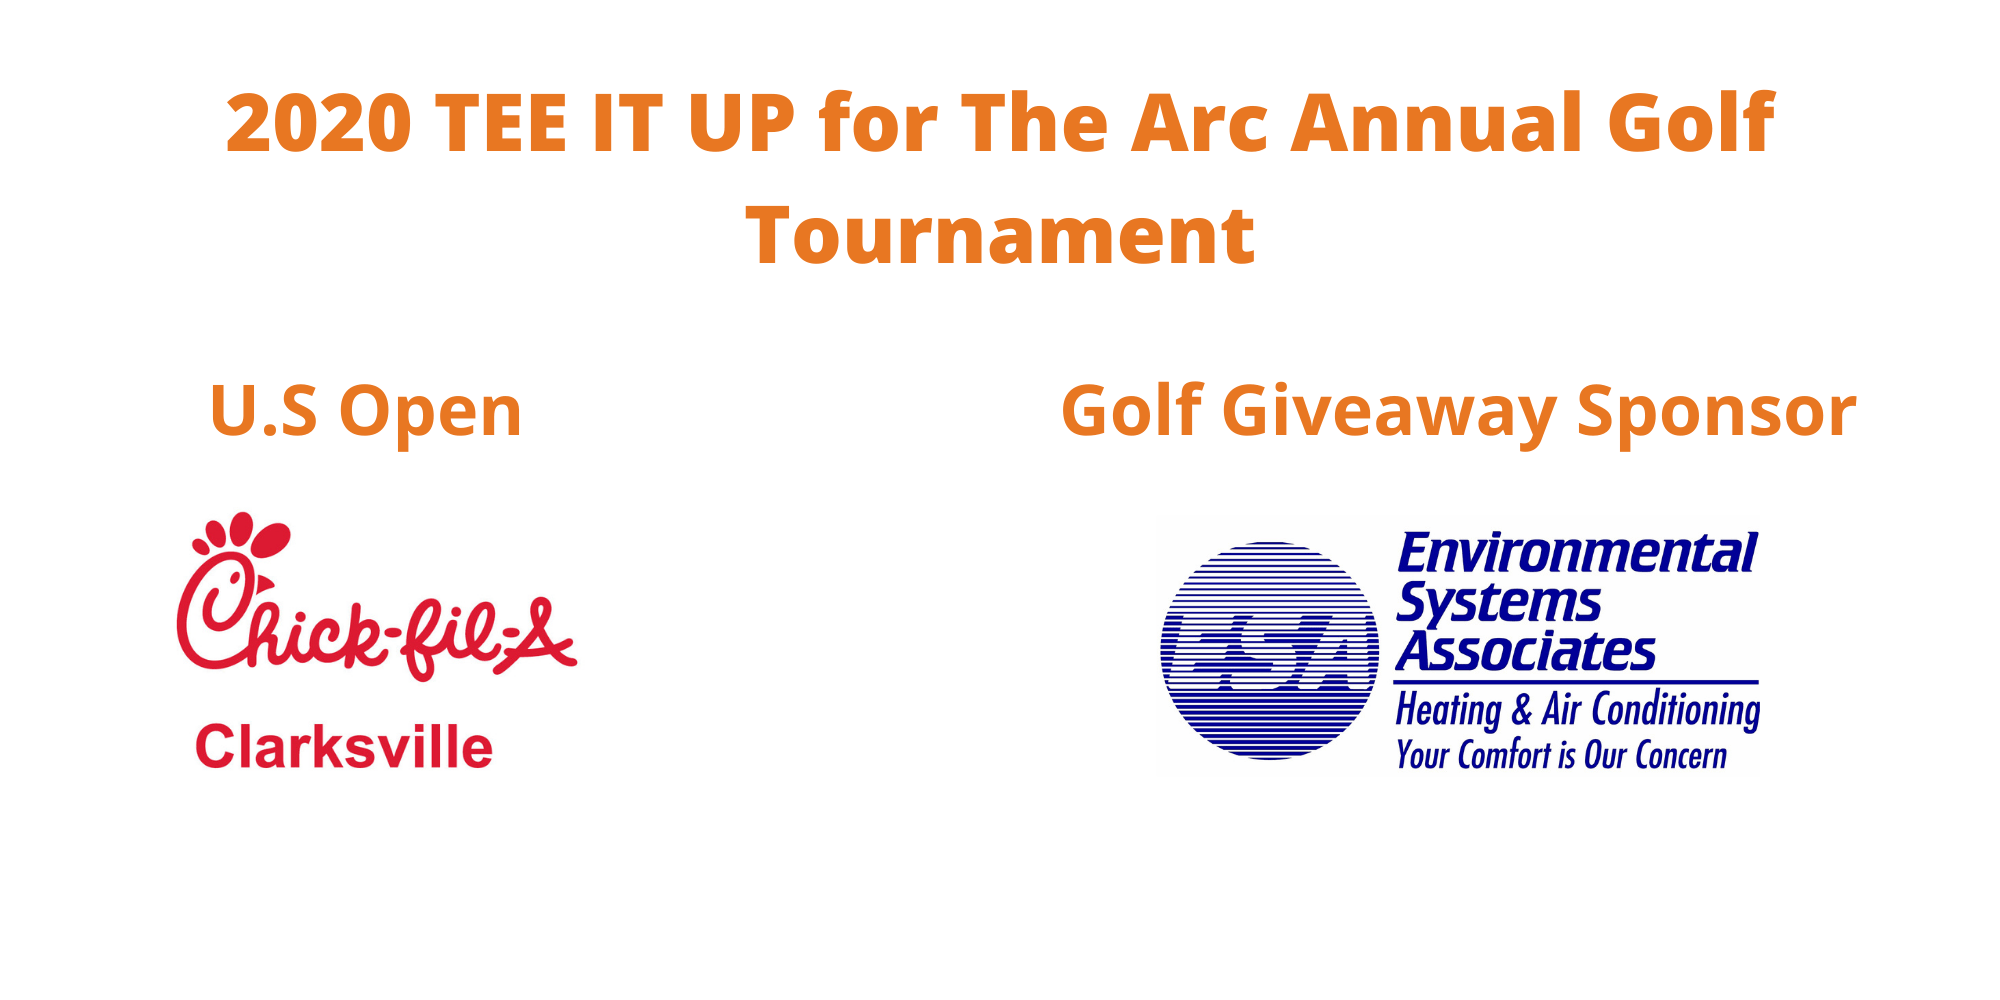 TEE IT UP for The Arc Annual Golf Tournament's U.S. Open Sponsor is Chick-fil-A and the Golf Giveaway Sponsor is Environmental Systems Associates